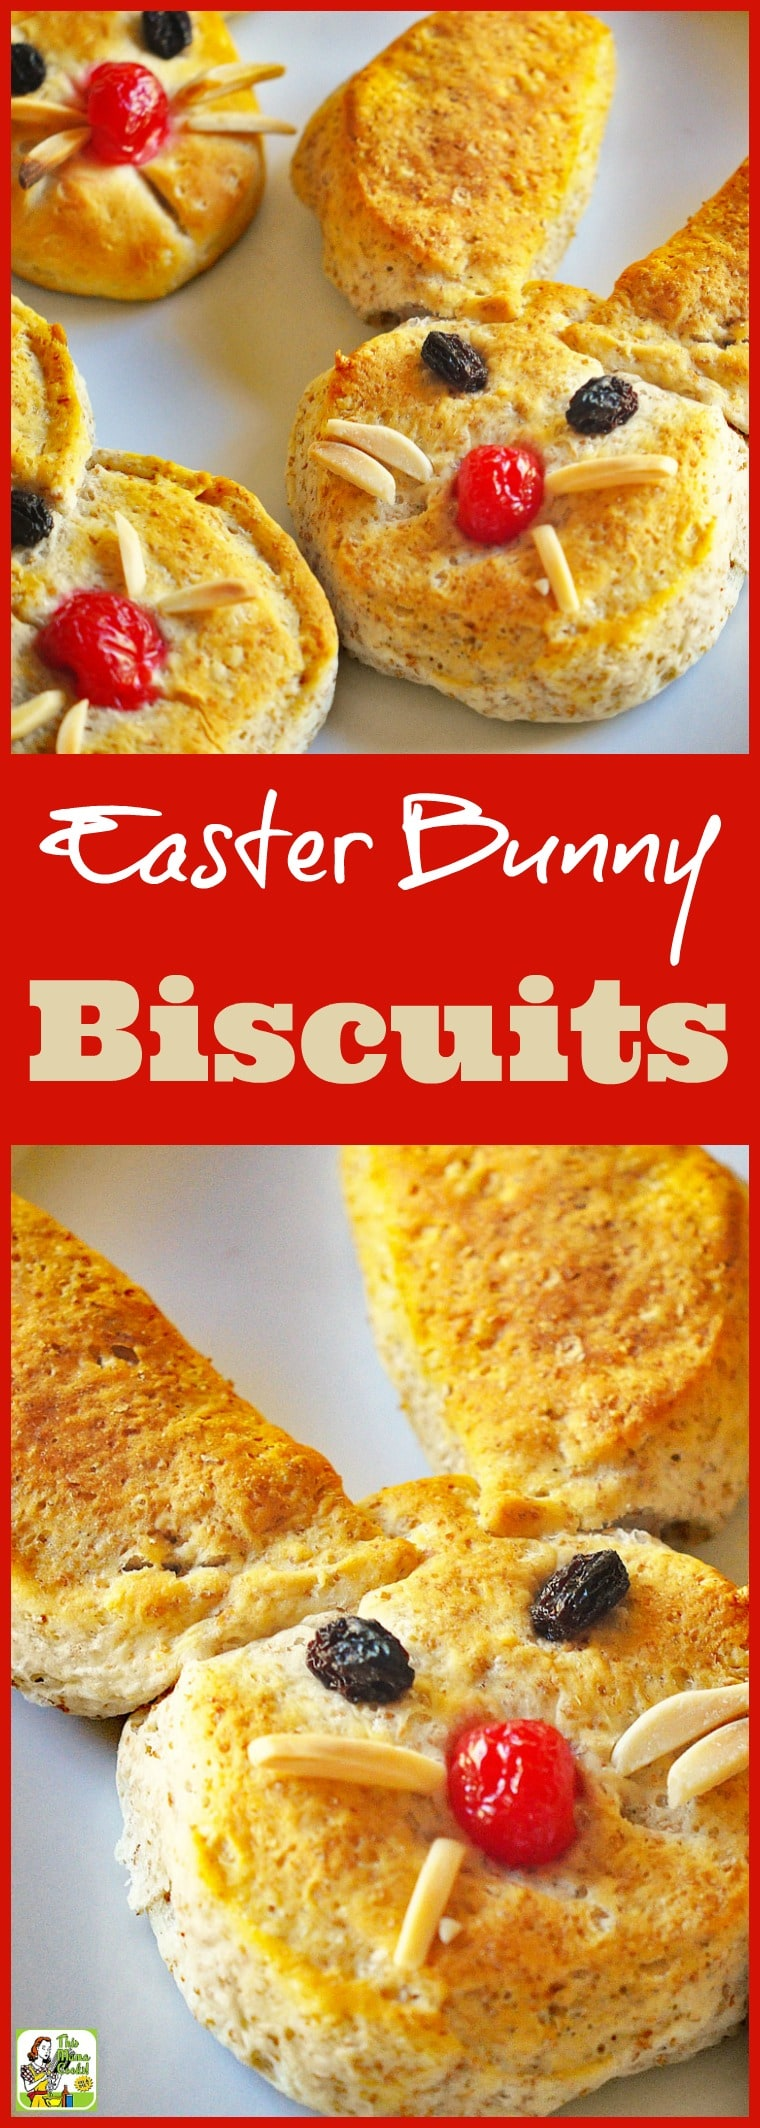 Easter Bunny Biscuits Recipe